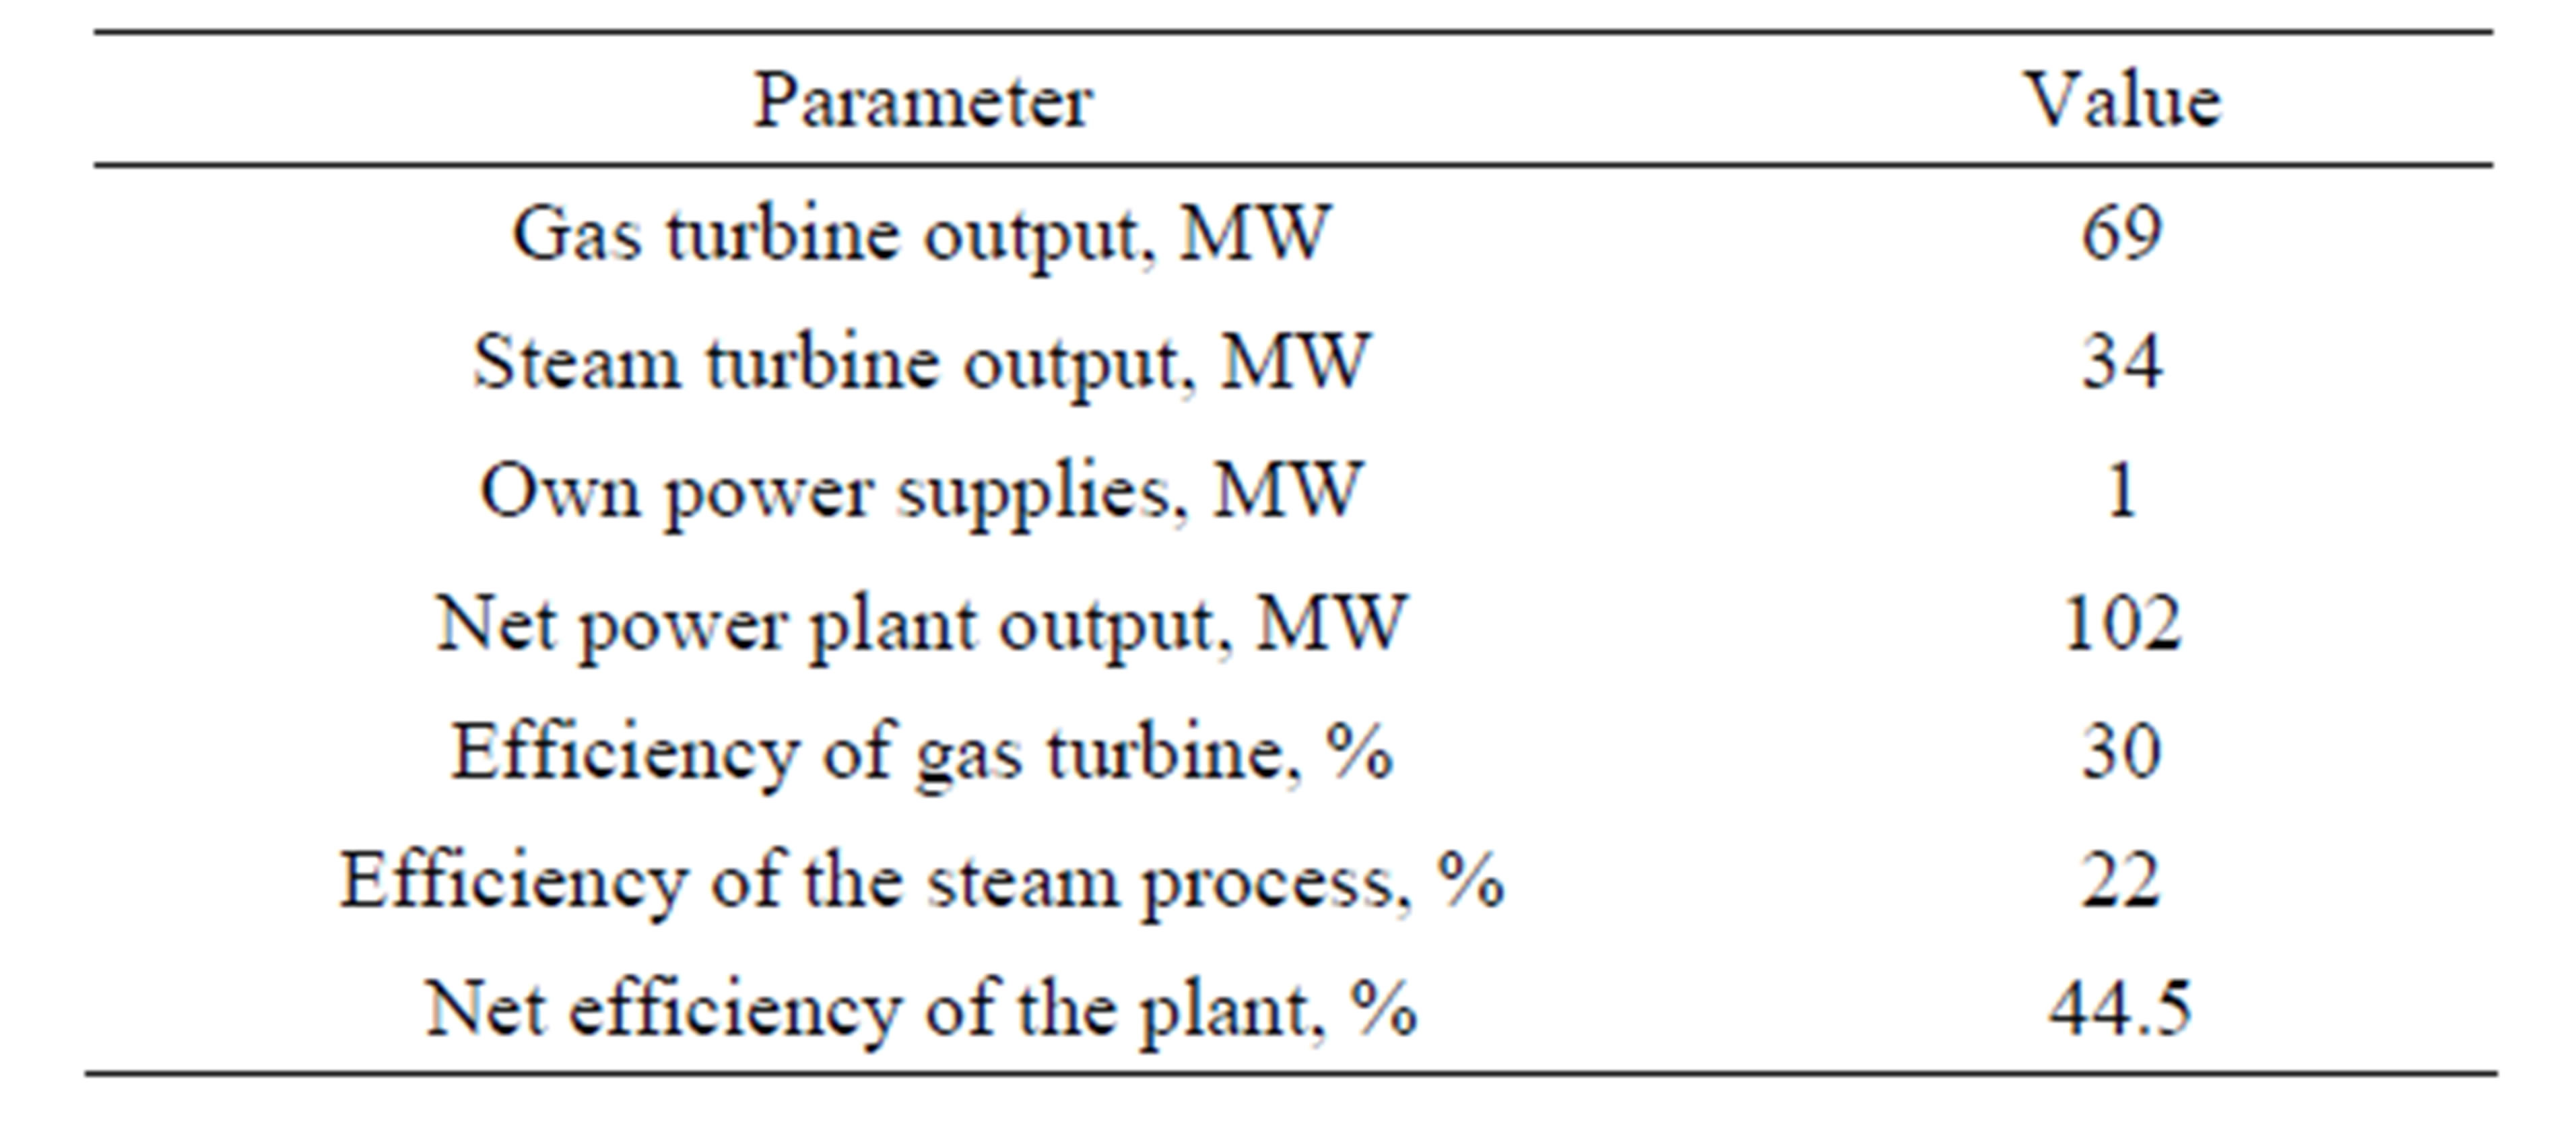 A parative Environmental Evaluation of the Coal and Natural Gas